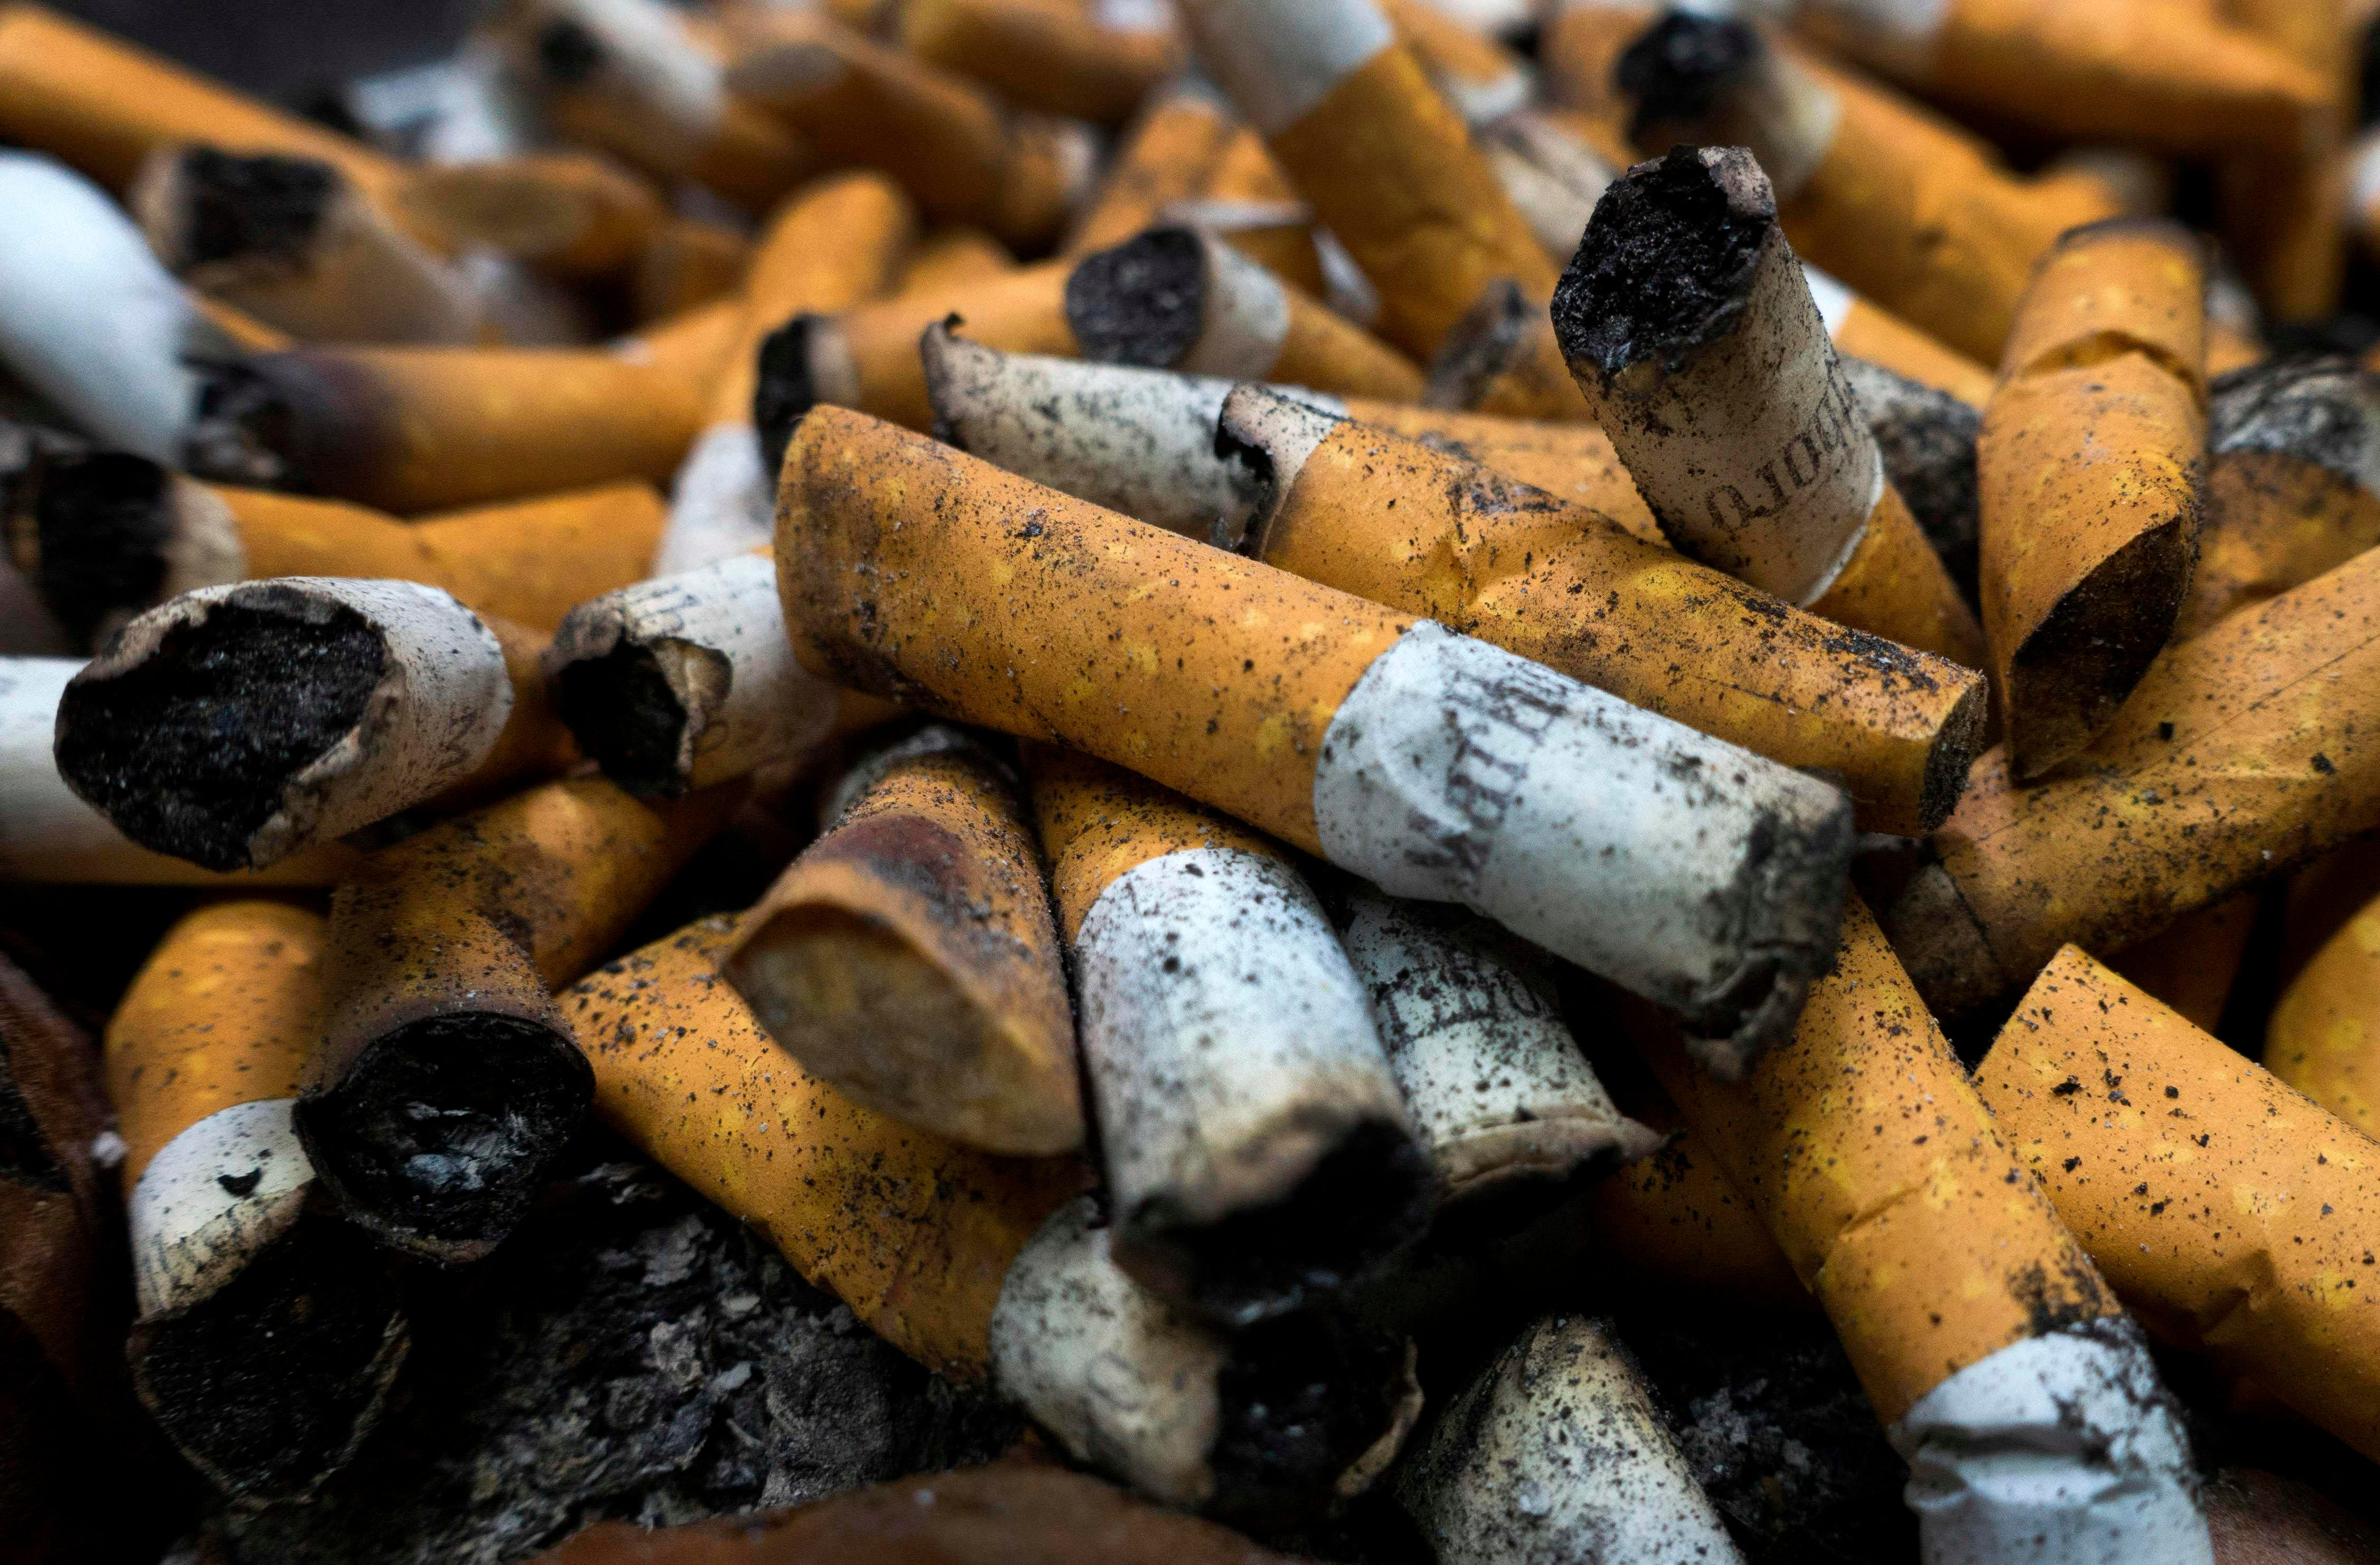 1.1 billion people smoked in 2019 — a record high, study says. But smoking decreased in the US